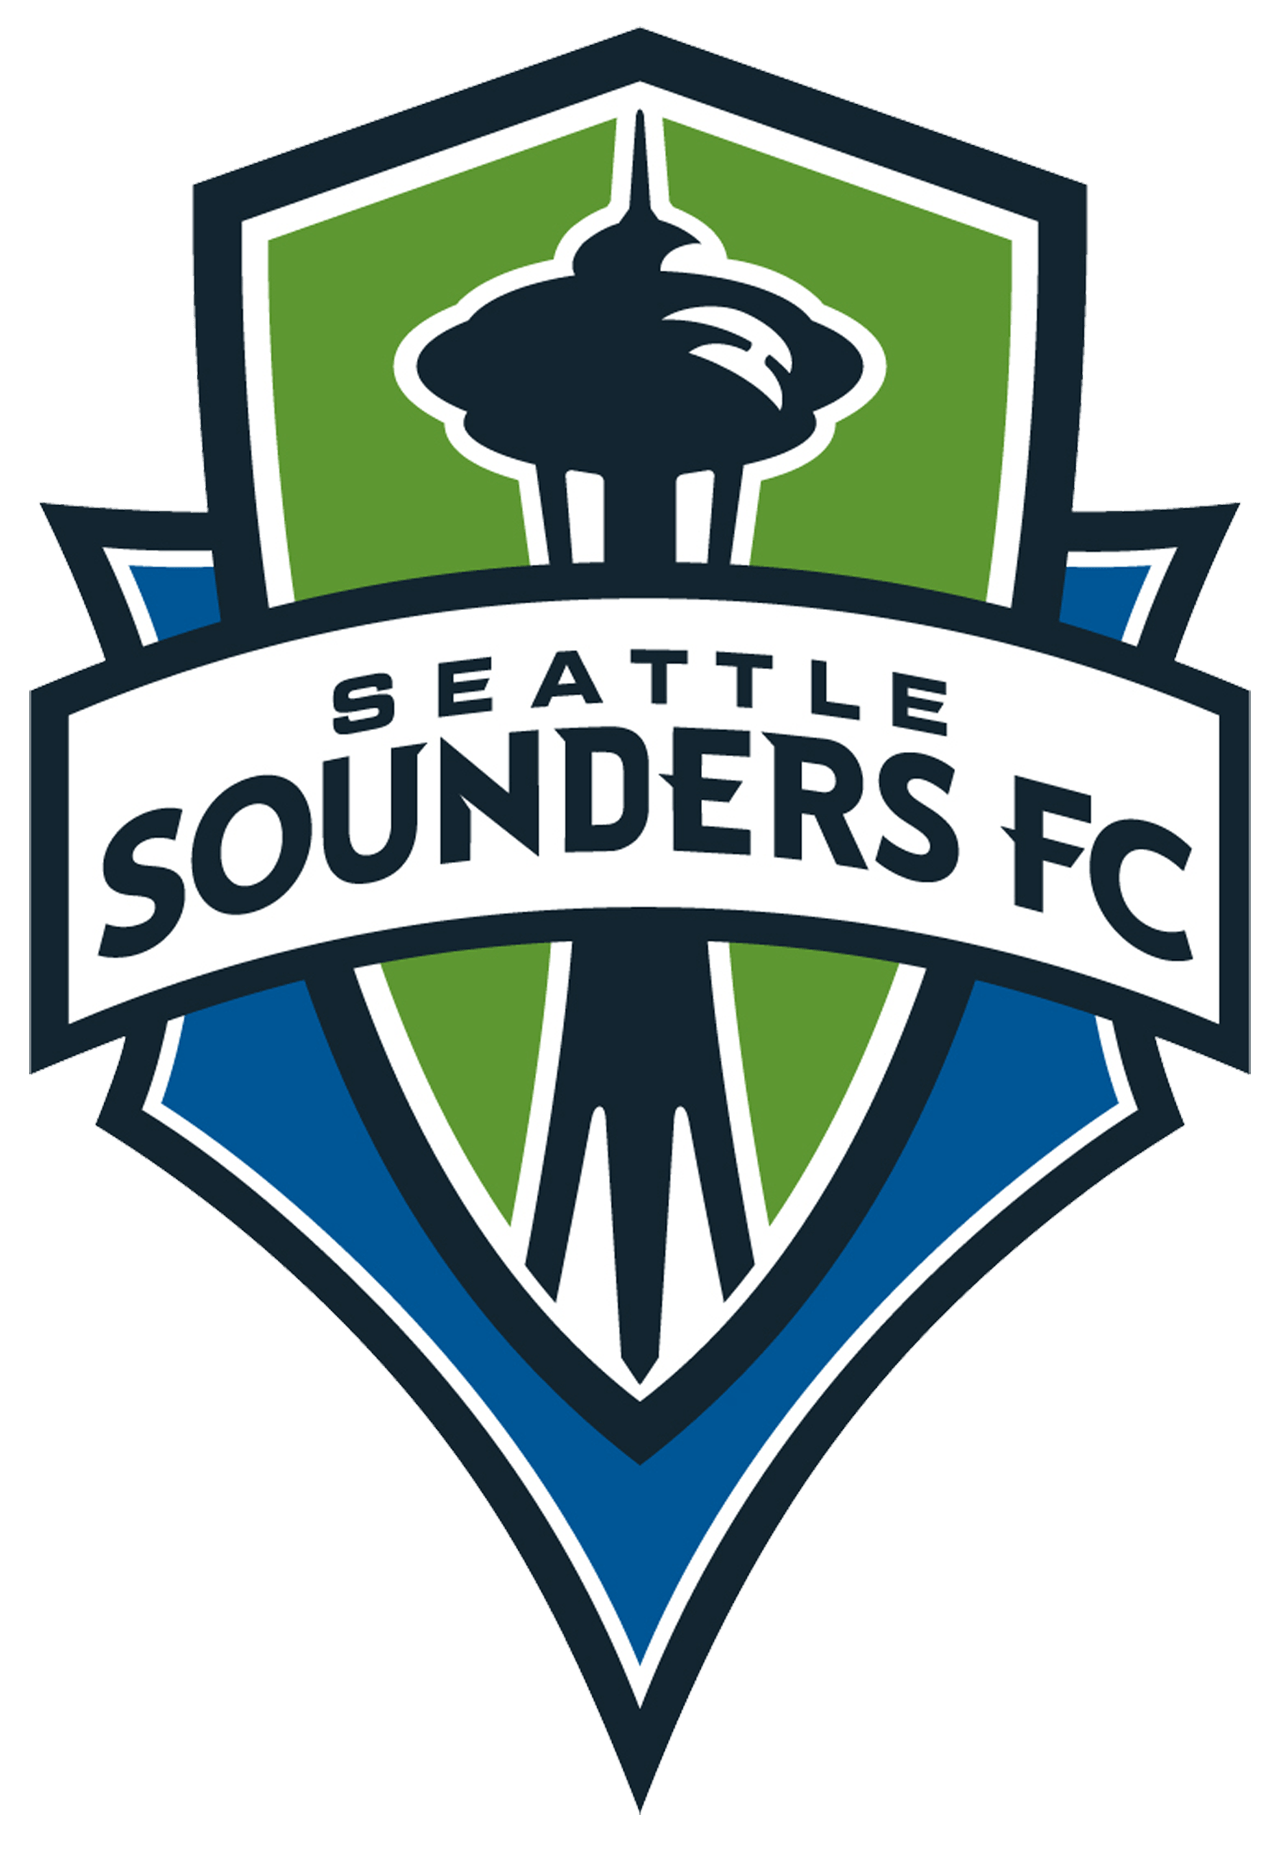 seattle sounders logo fc logo png wallpaper, Football Pictures and